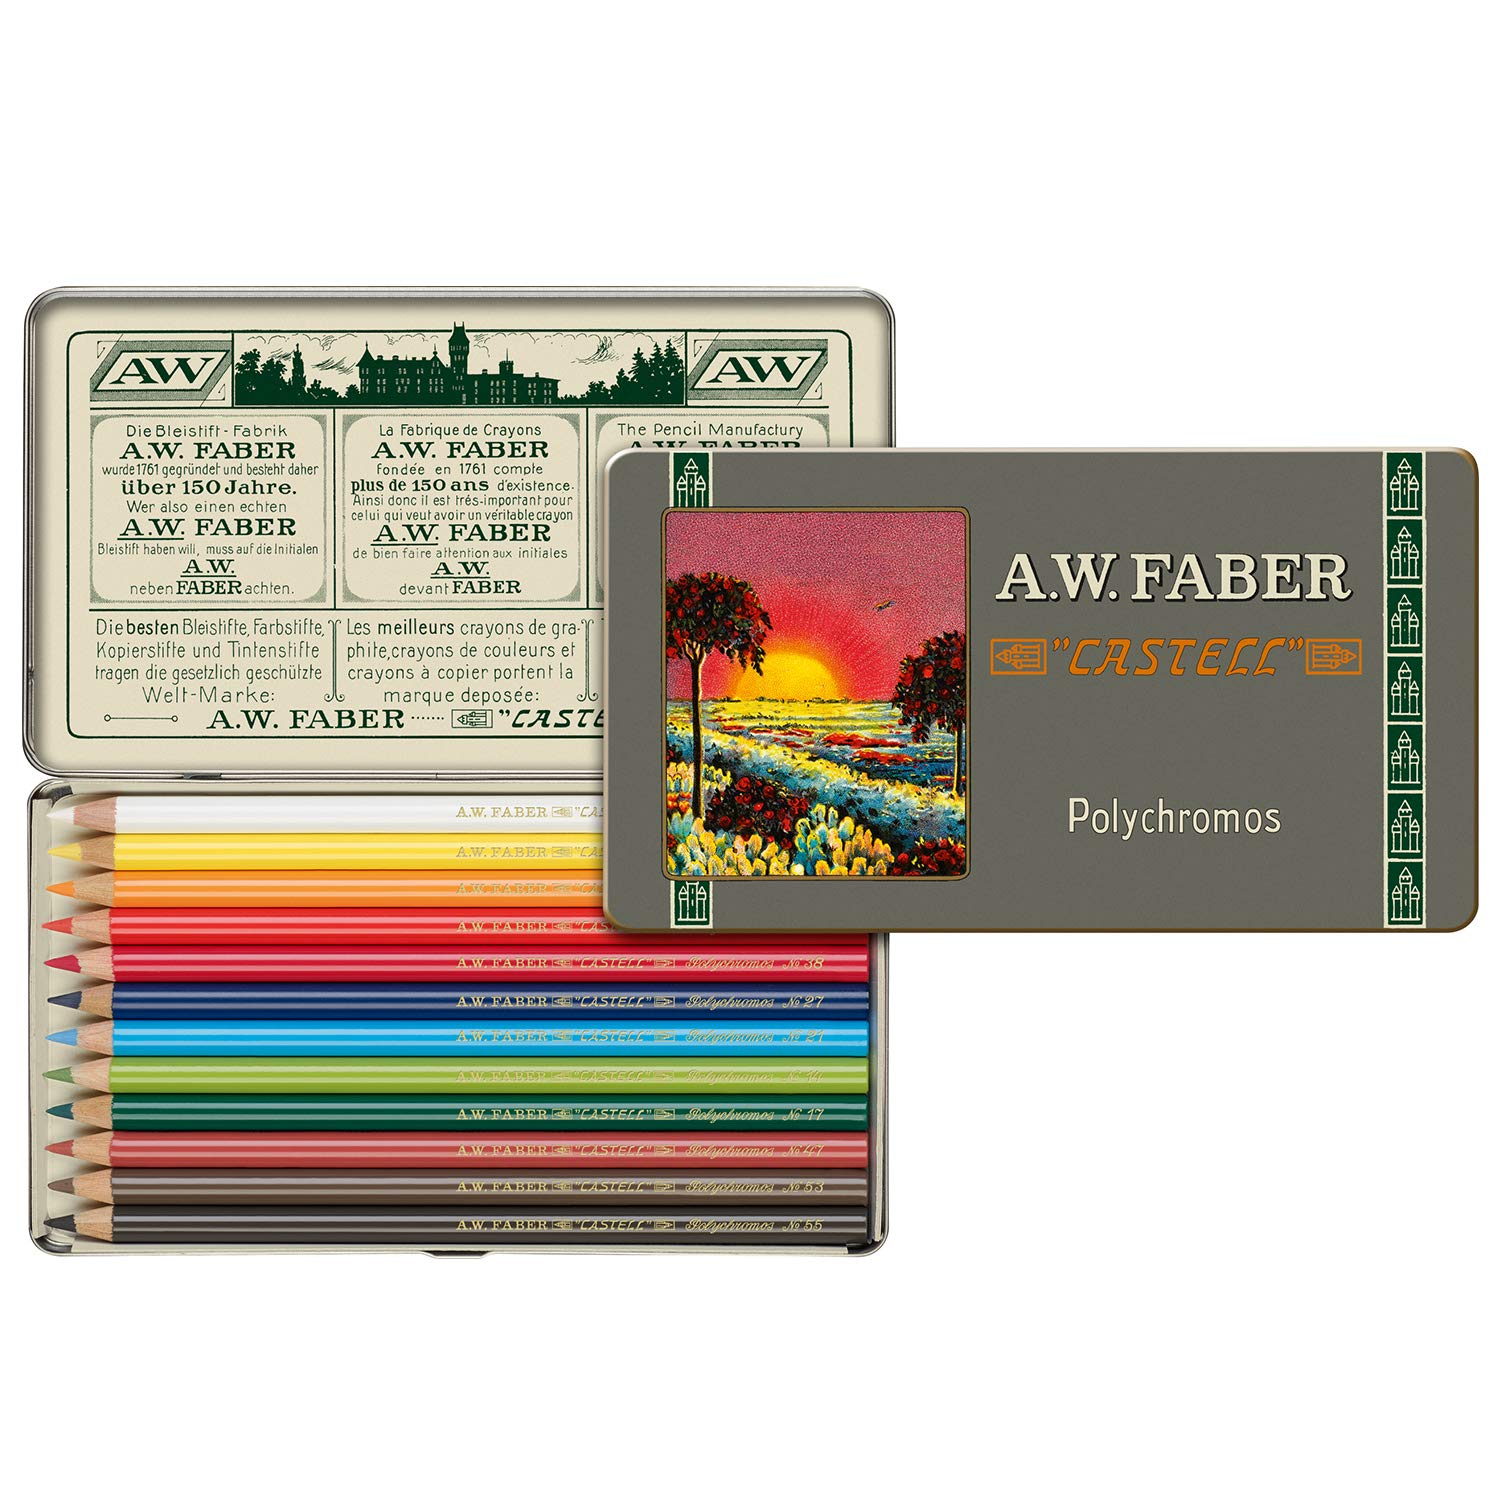 Faber-Castell Polychromos 111th Anniversary Limited Edition Wood Colored Pencil Tin - 12 Colors by Faber-Castell (Image #1)